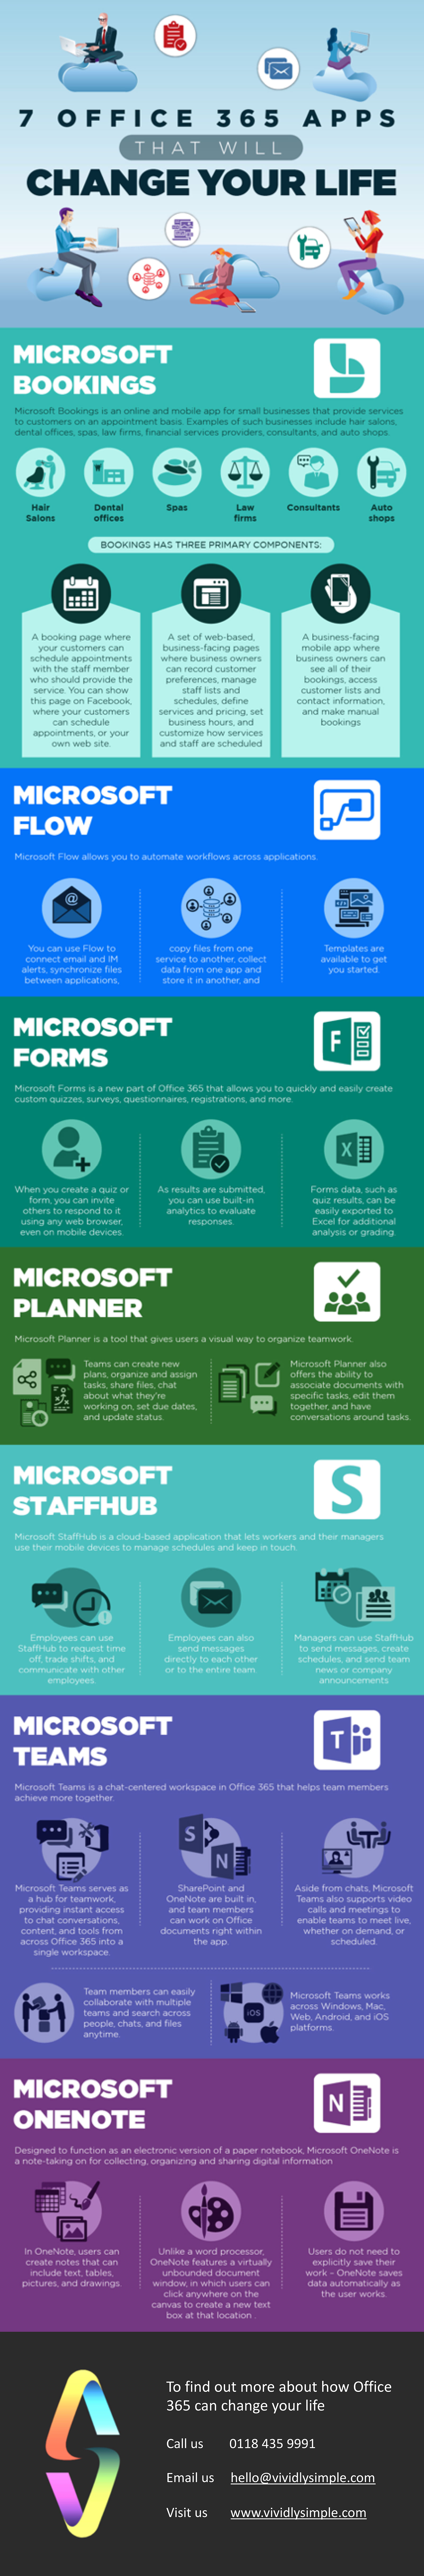 Office 365 - 7 more things you can do - Vividly Simple